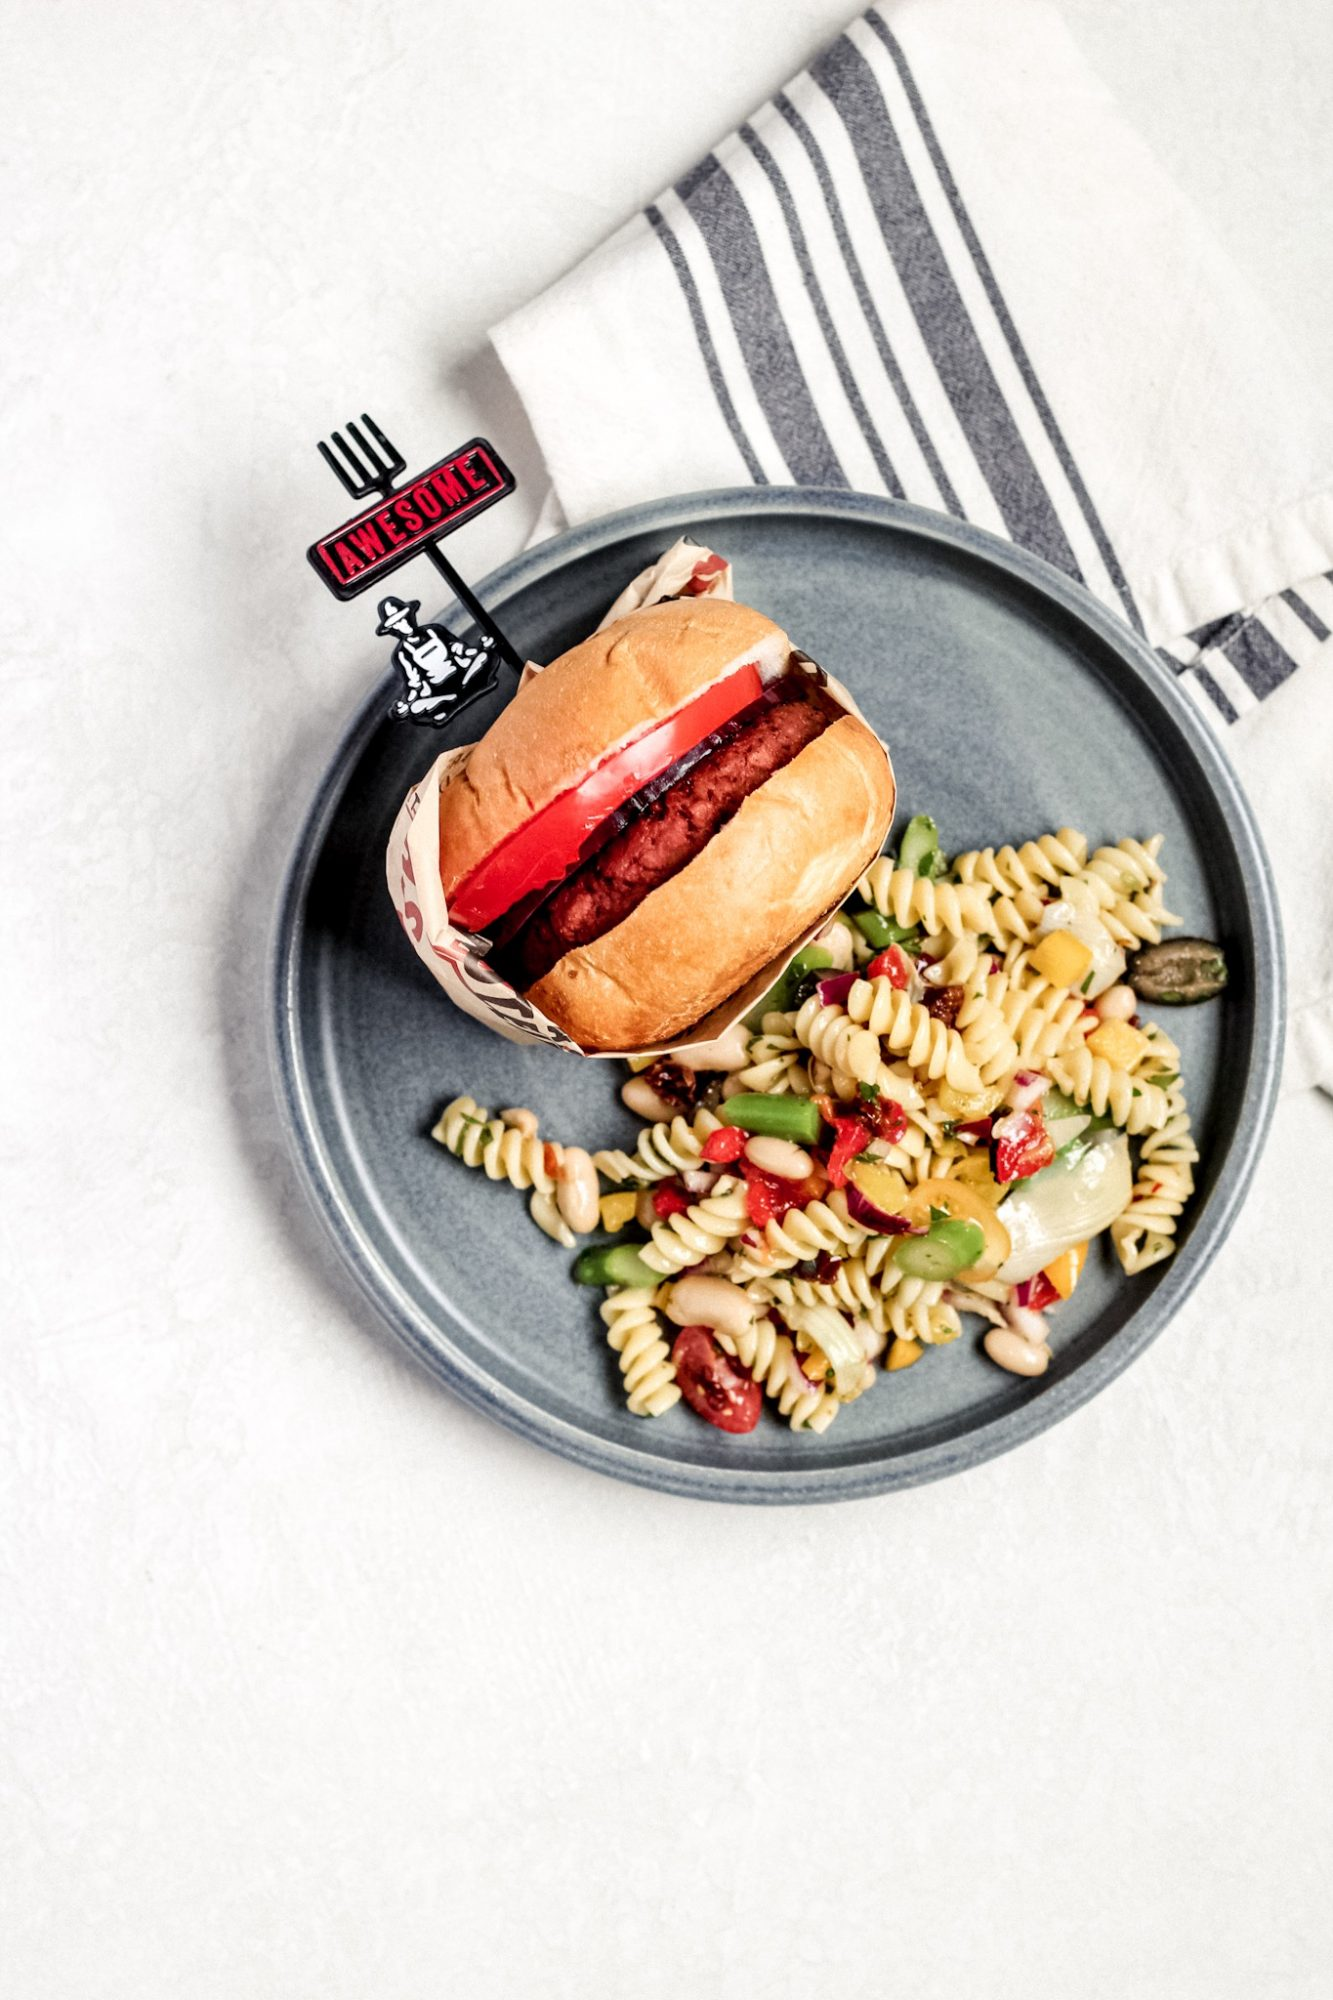 plant-based burgers with vegan pasta salad